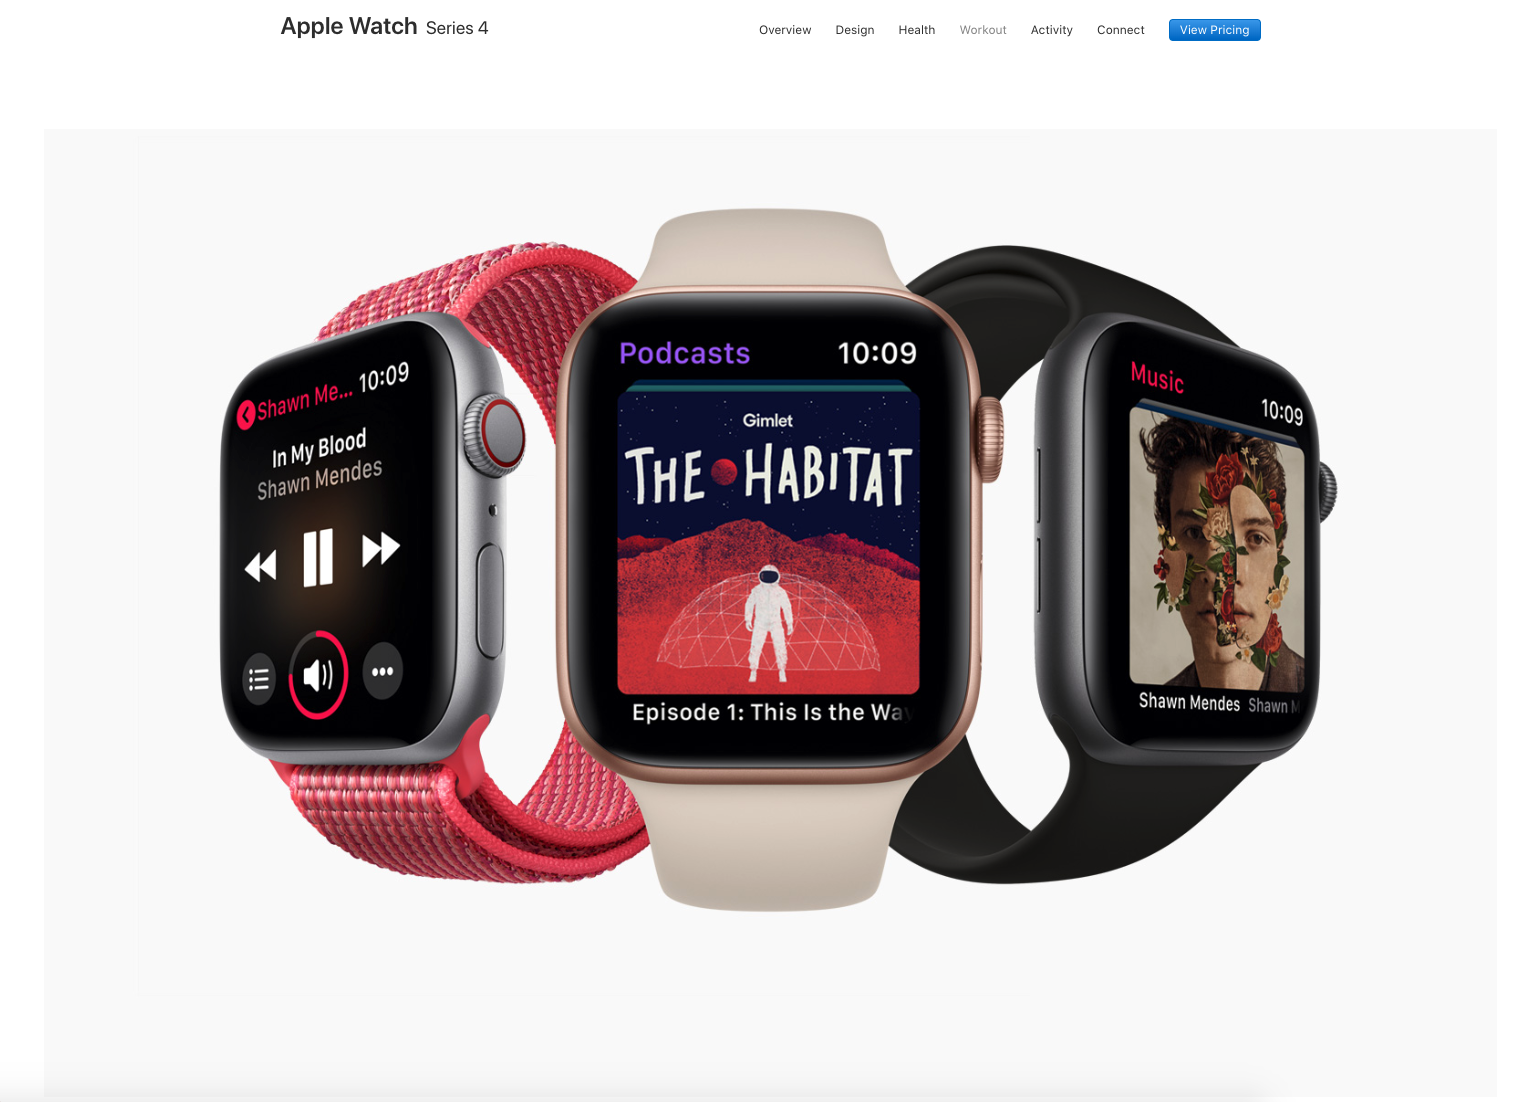 Apple used The Habitat artwork on their website when they launched all their new products including the new Apple Watch Series 4 in September 2018.